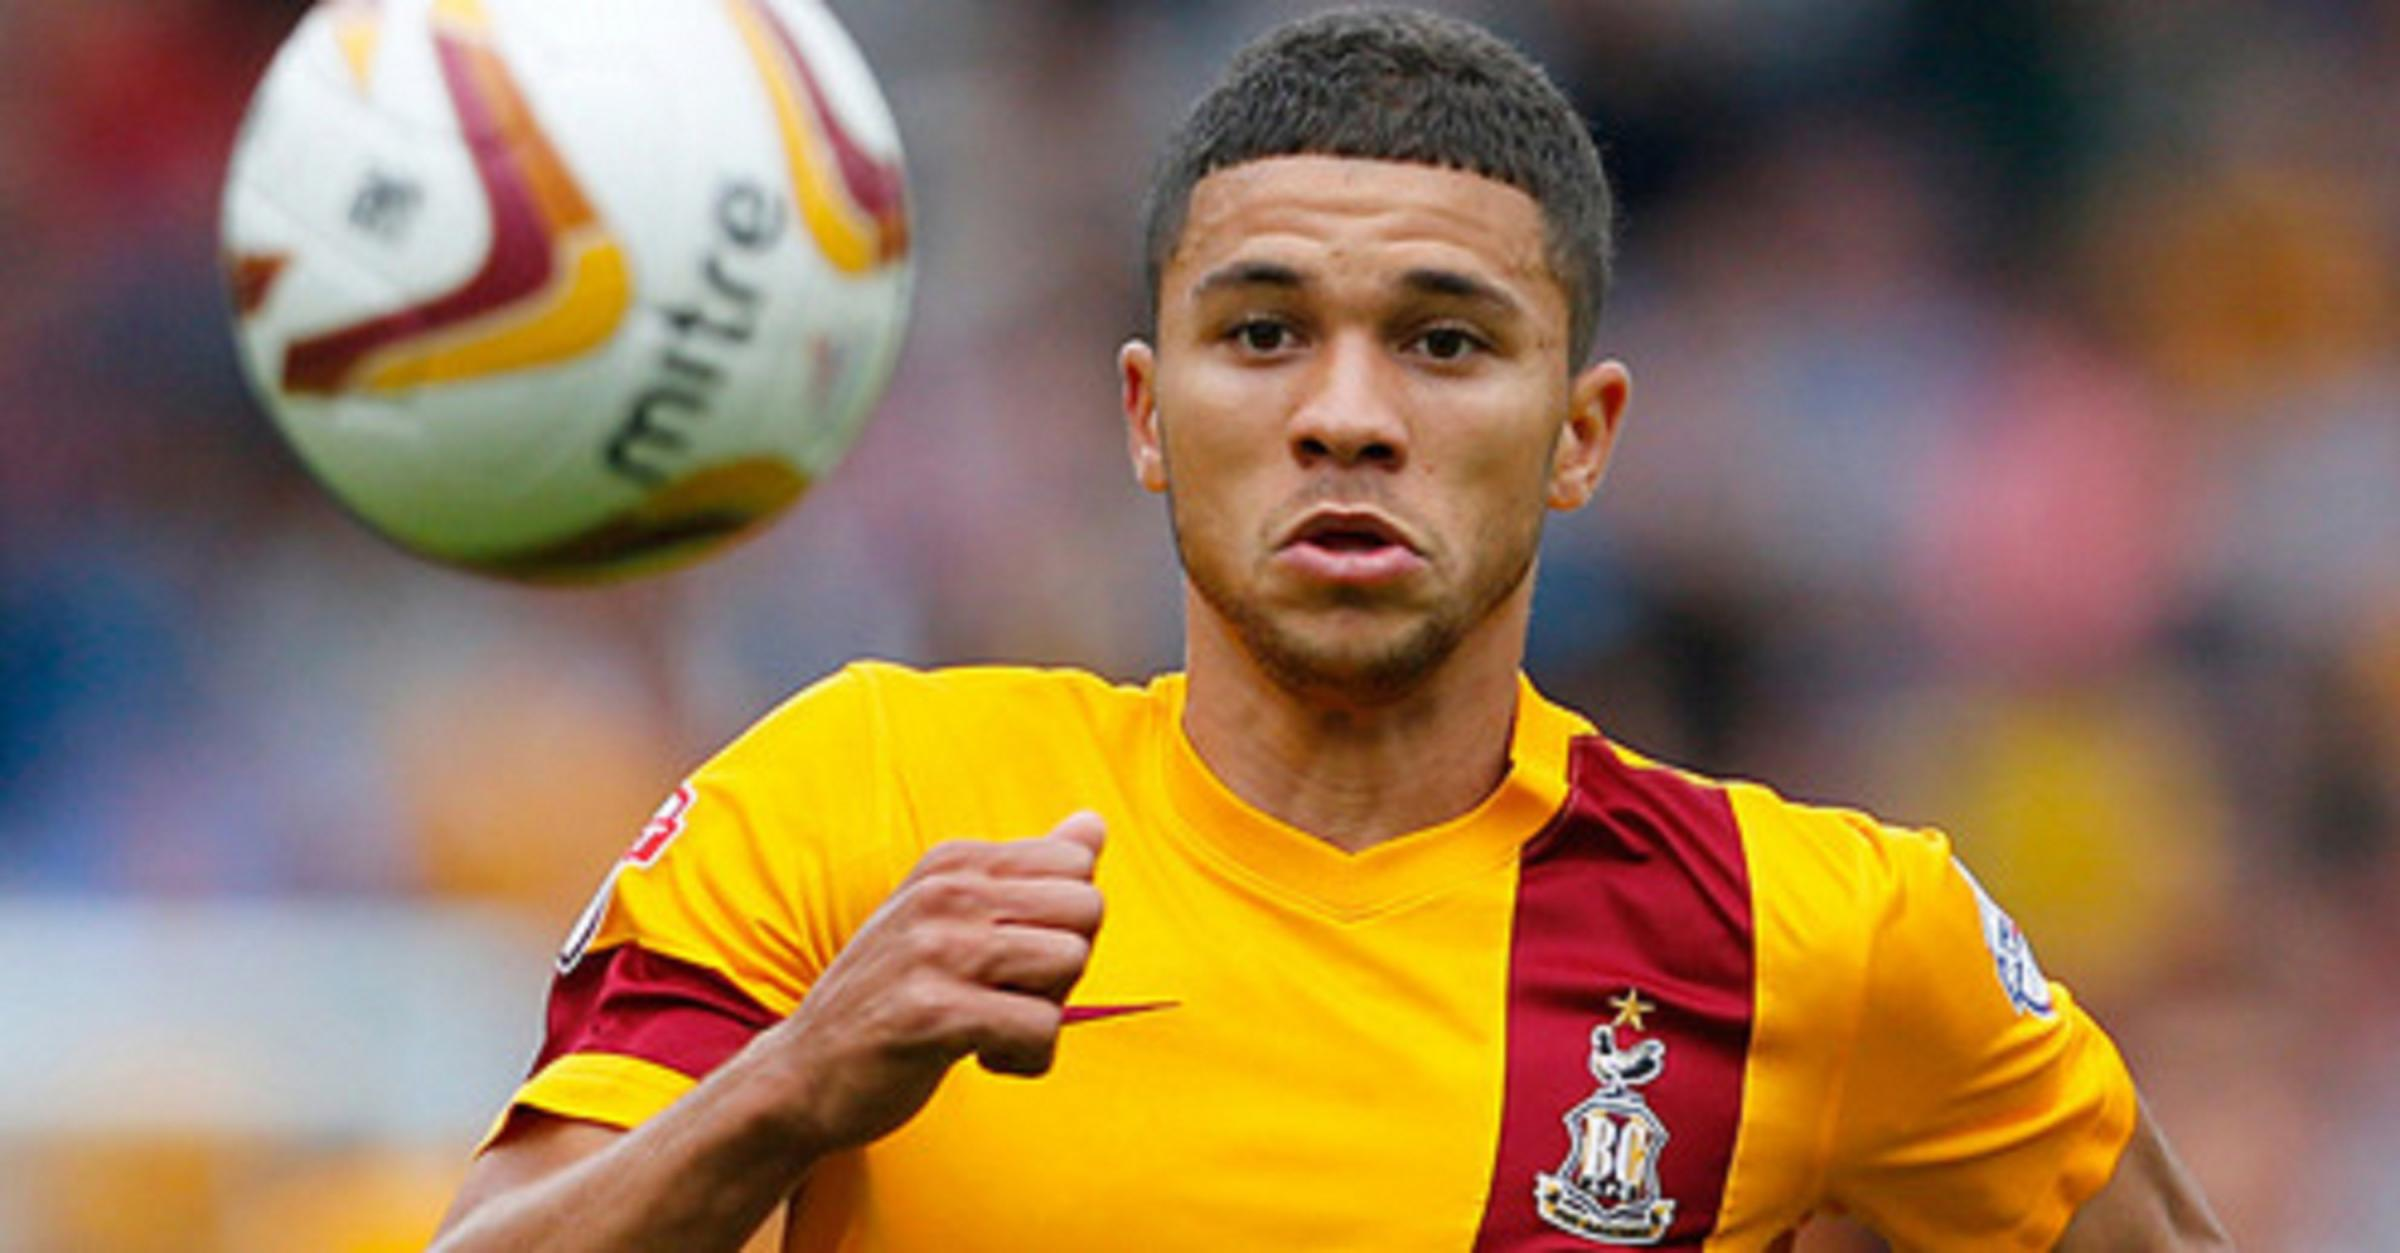 UPDATED: Wells joins Huddersfield from Bradford City